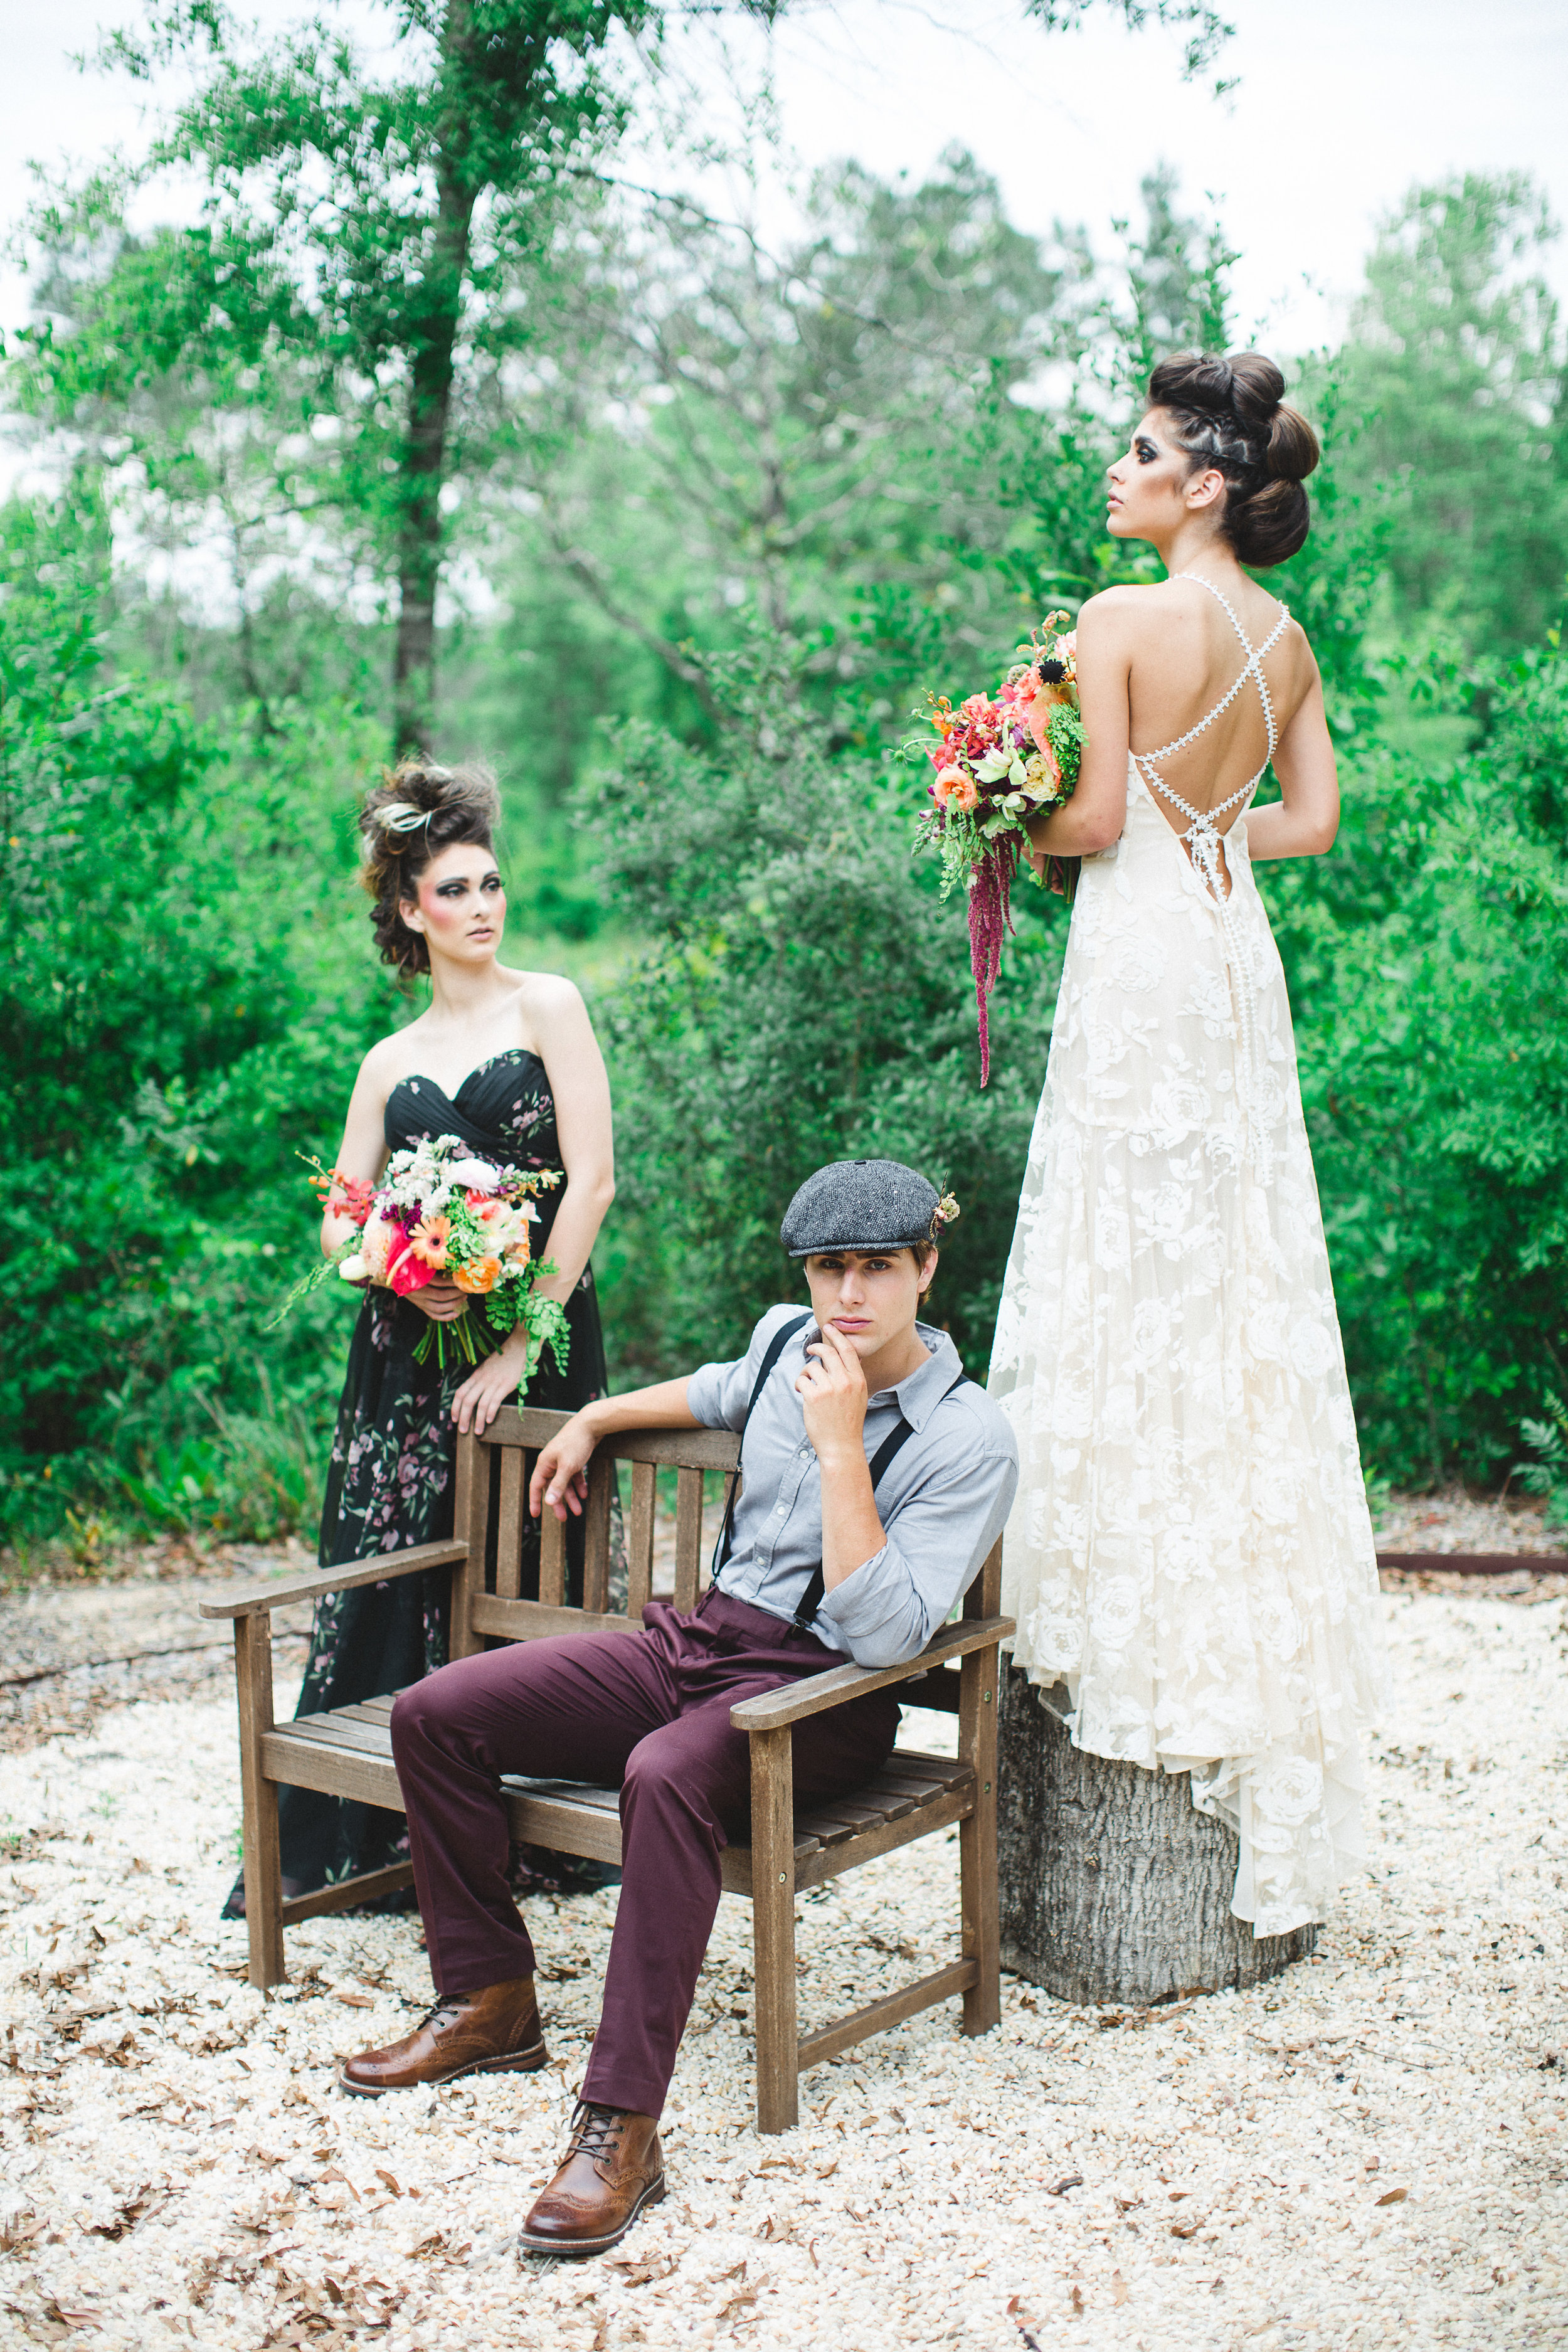 izzy-hudgins-photography-emily-burton-designs-ivory-and-beau-bridal-boutique-daughters-of-simone-sonje-jenny-yoo-bridesmaids-glamping-wedding-boho-wedding-outdoor-wedding-coldwater-gardens-wedding-savannah-bridal-boutique-savannah-wedding-planner-15.jpg